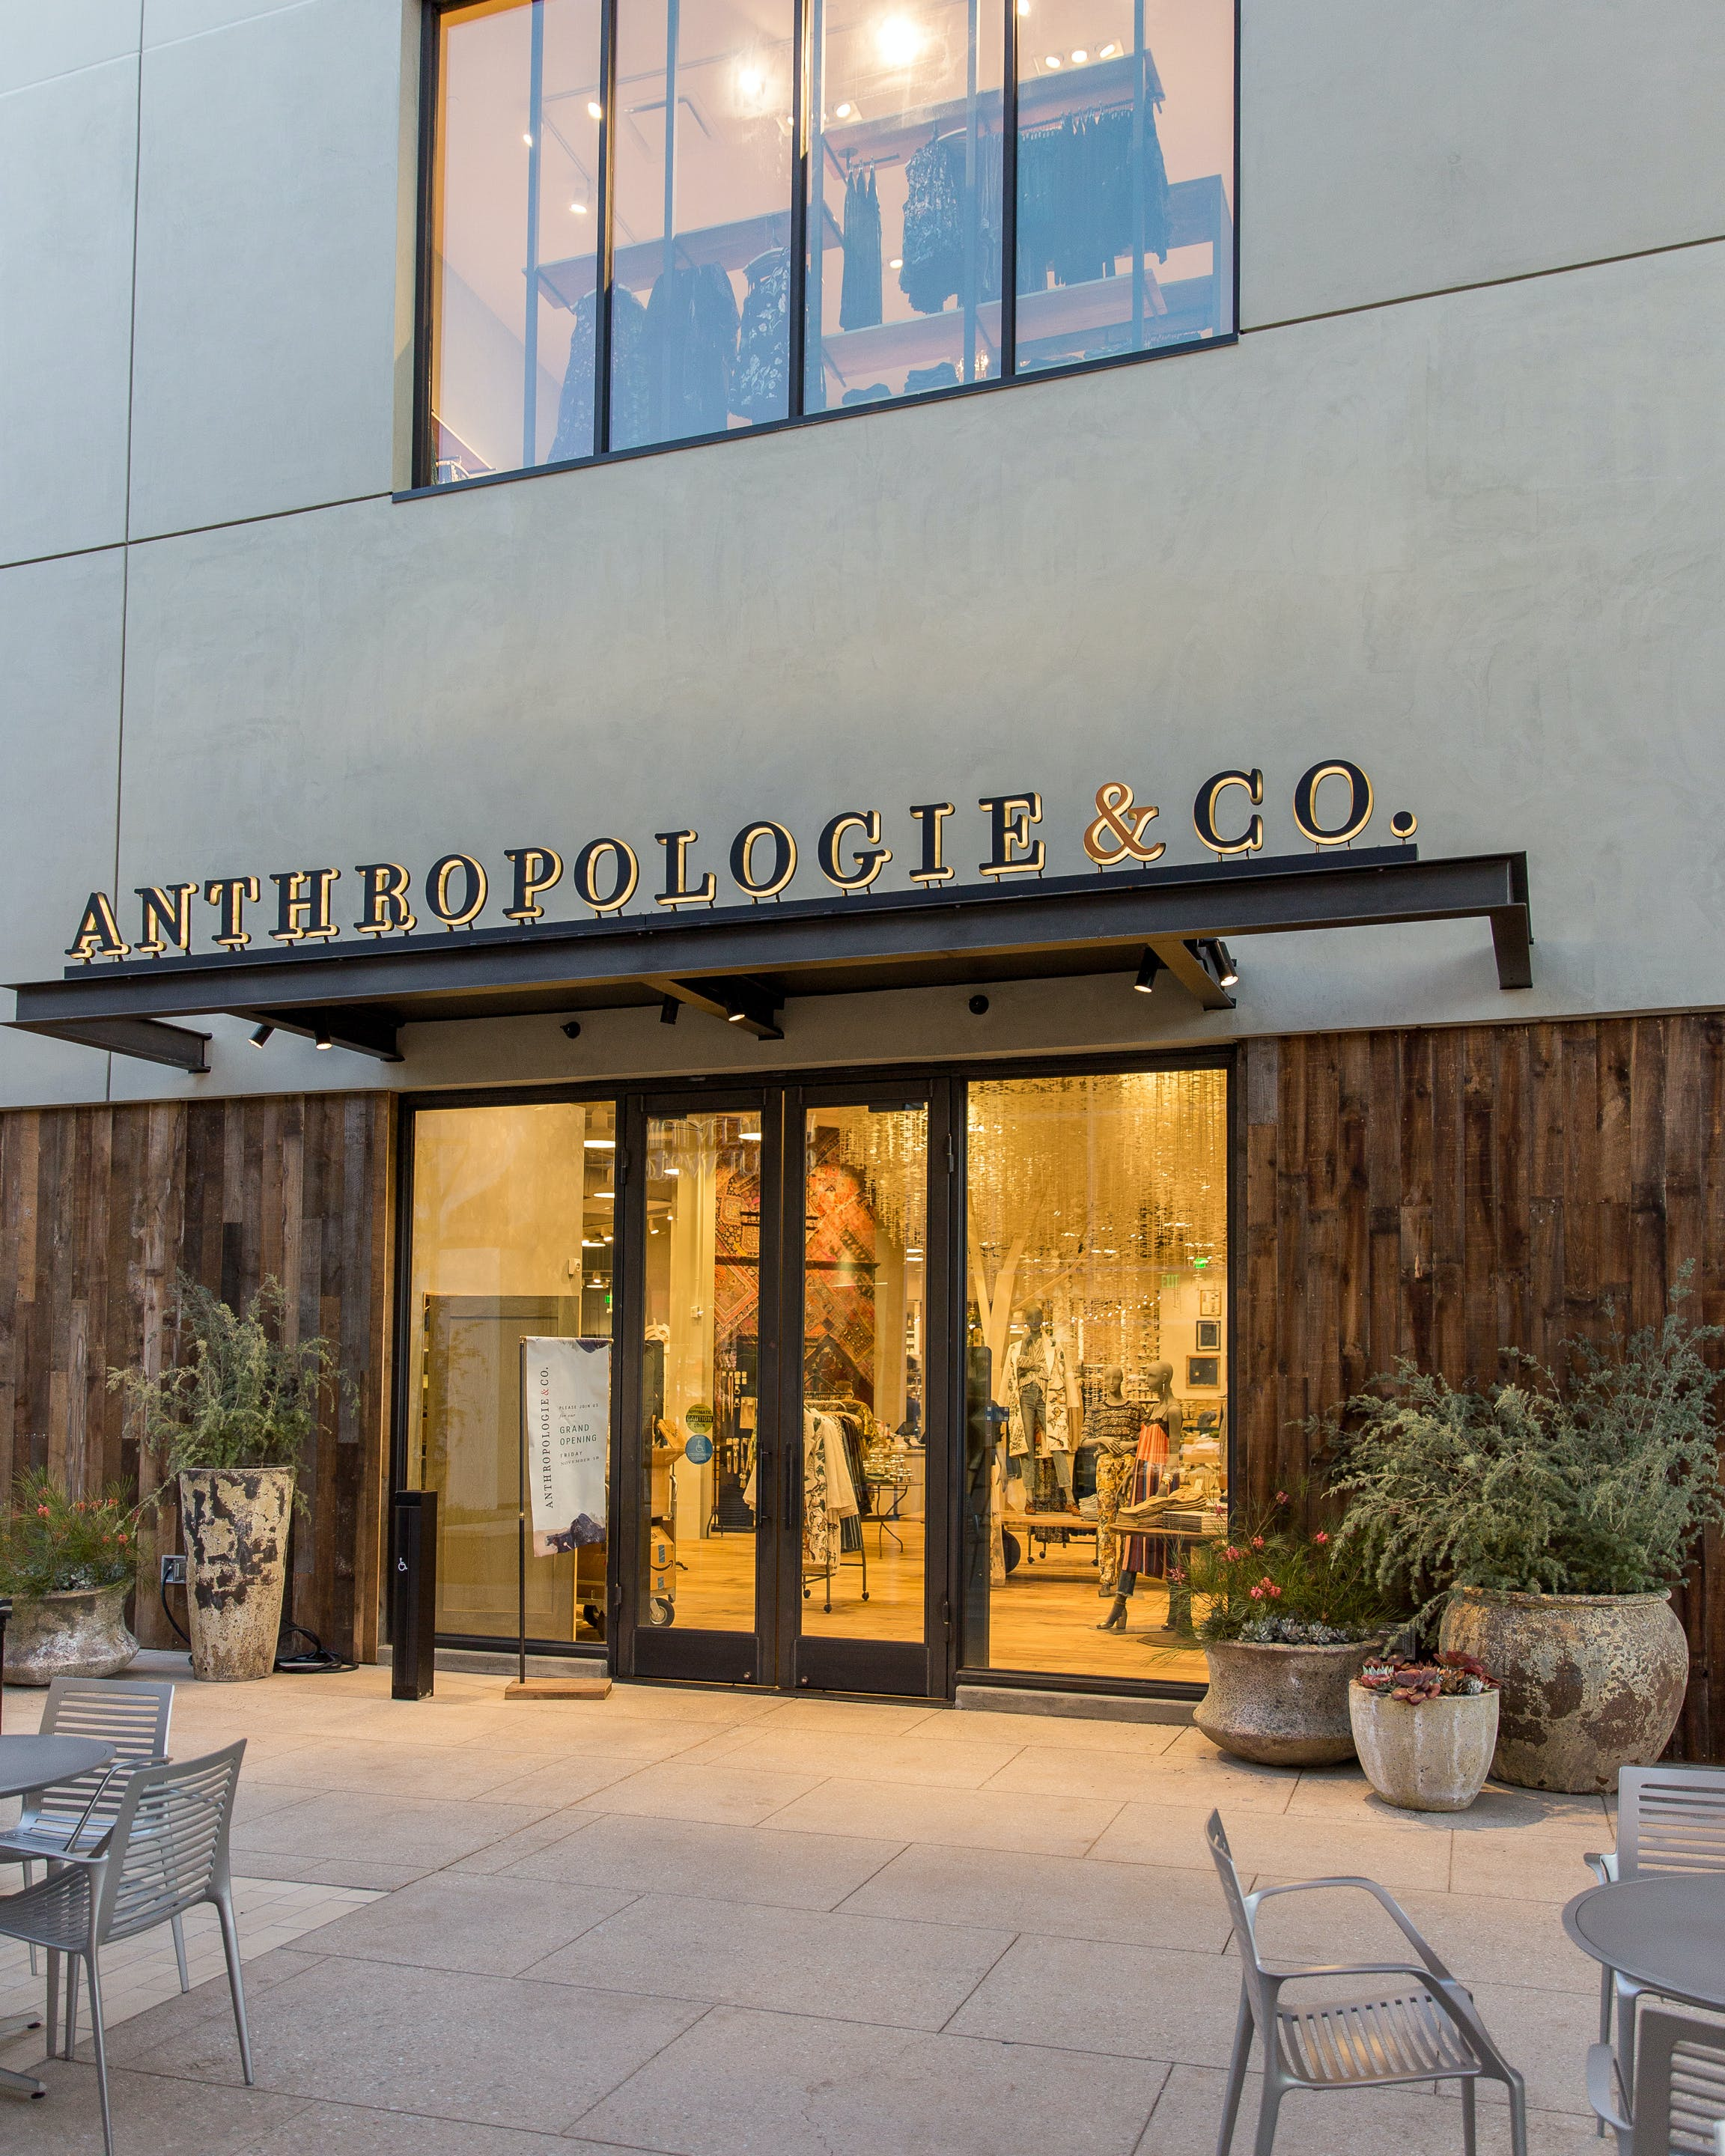 9 Secrets to Shopping Smarter at Anthropologie - PureWow